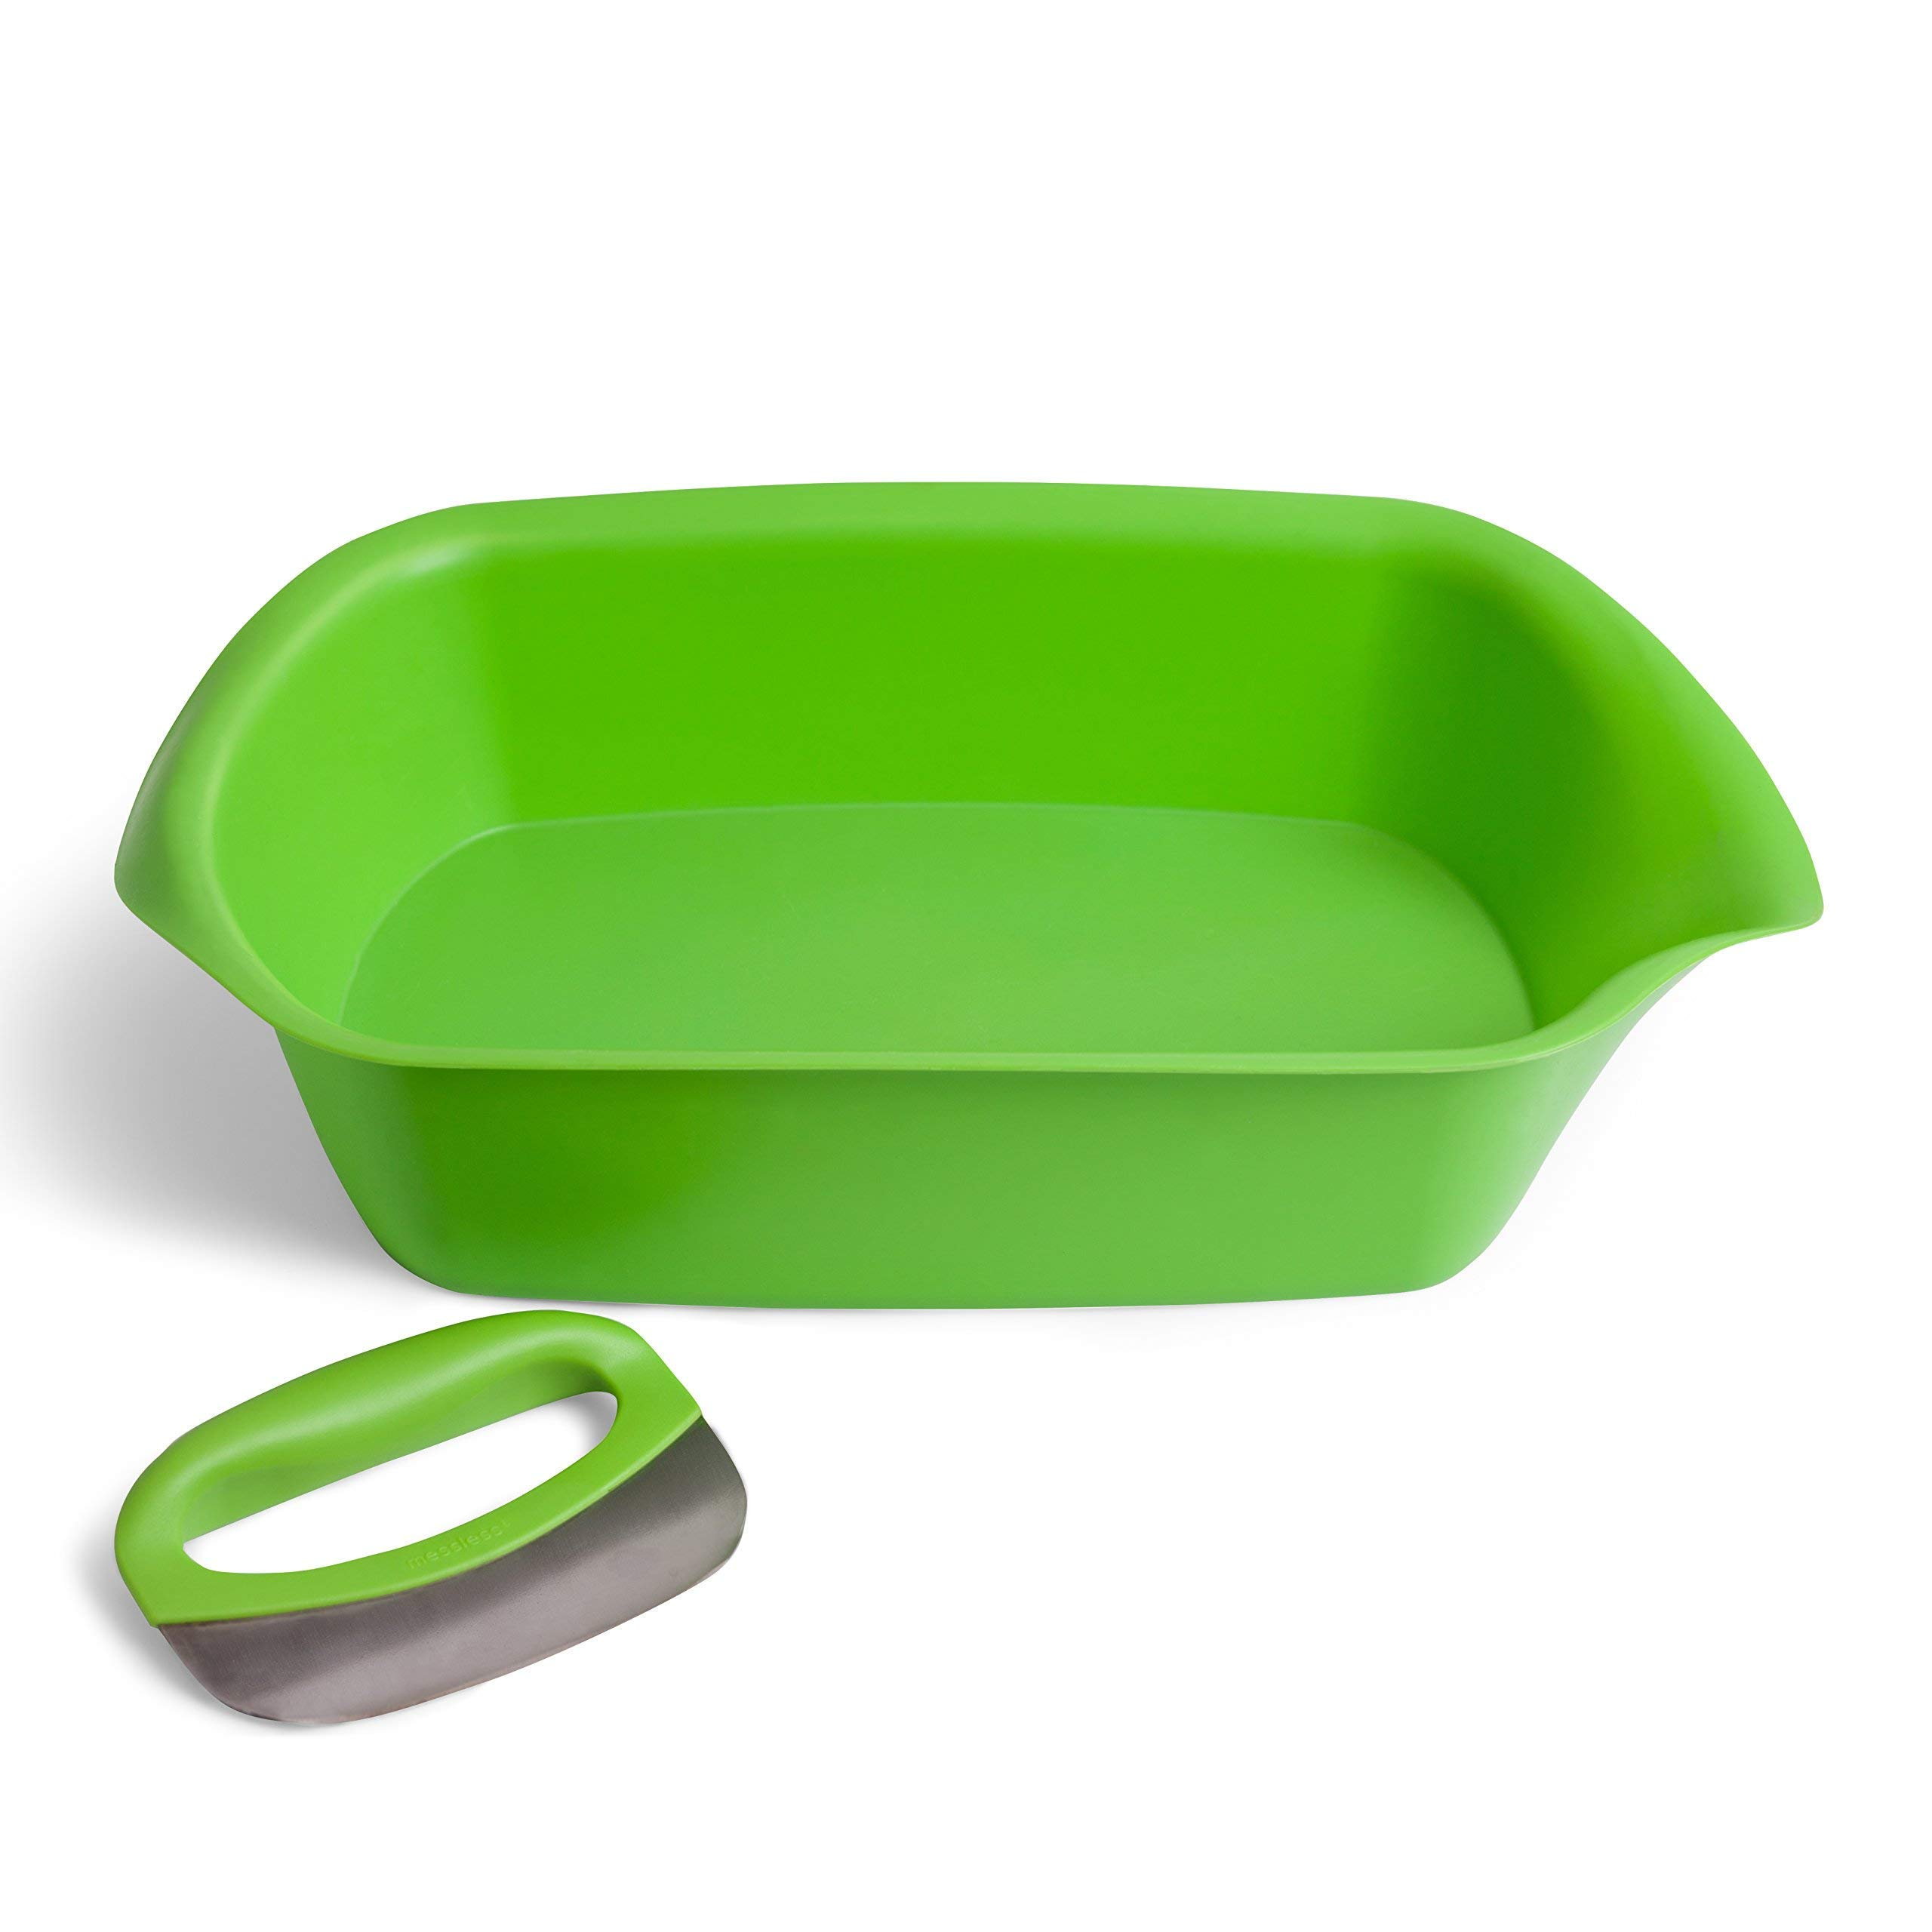 Salad Chopper Set with Salad Cutter and Salad Chopper Bowl by messless